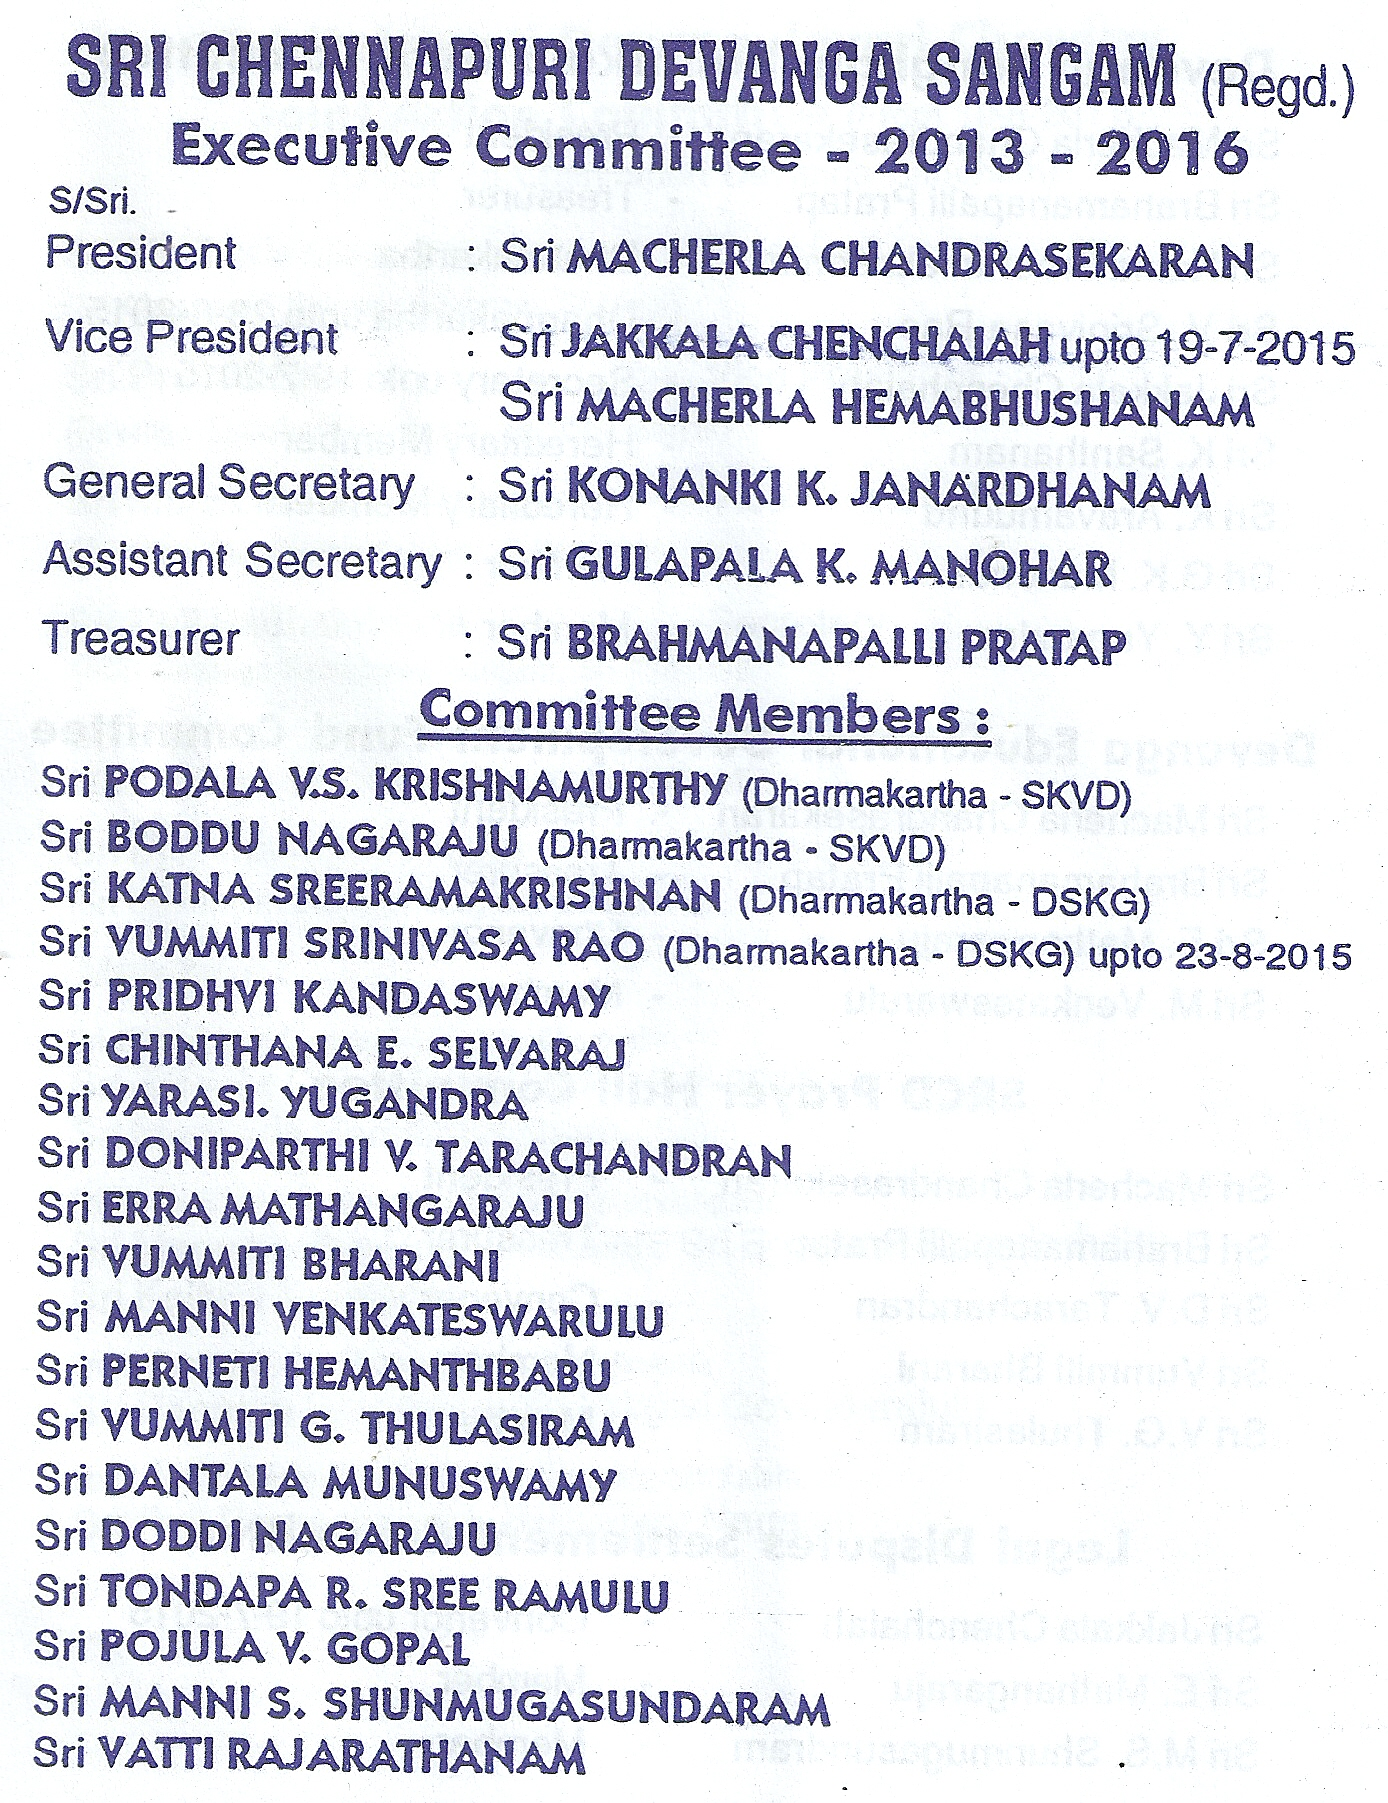 sri chennapuri devanga sangham executive committee members